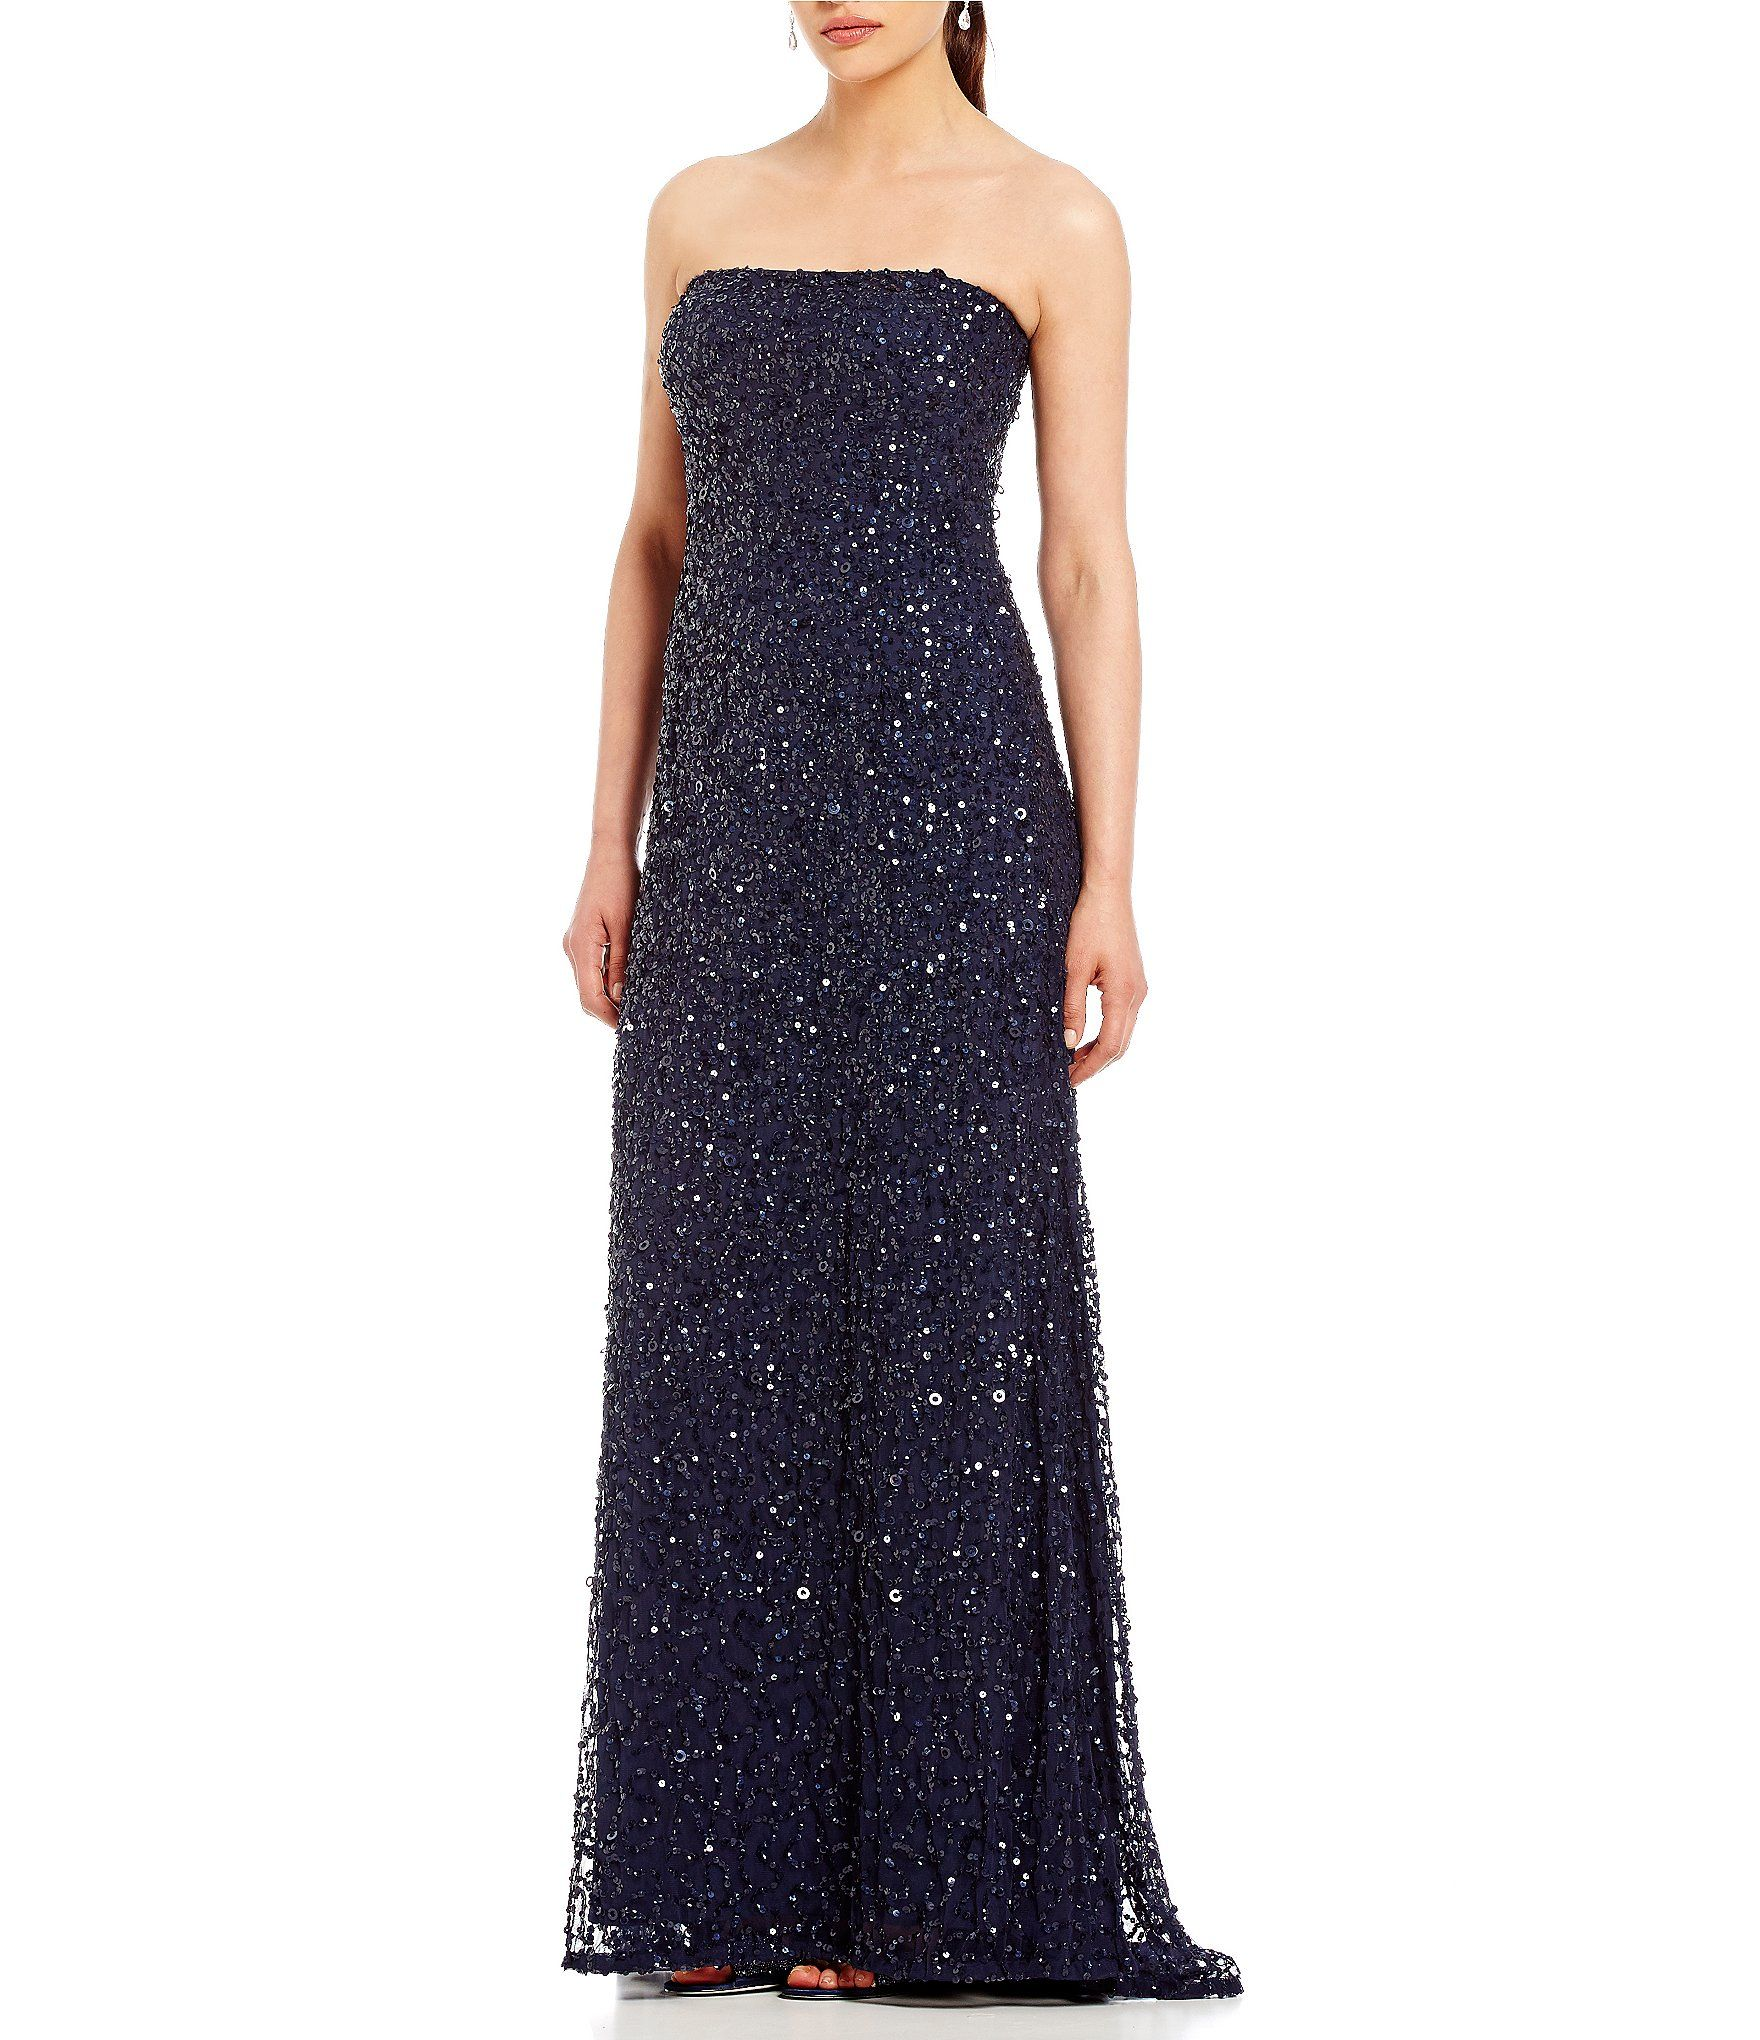 Adrianna Papell Strapless Beaded Gown | Adrianna papell, Dillards ...